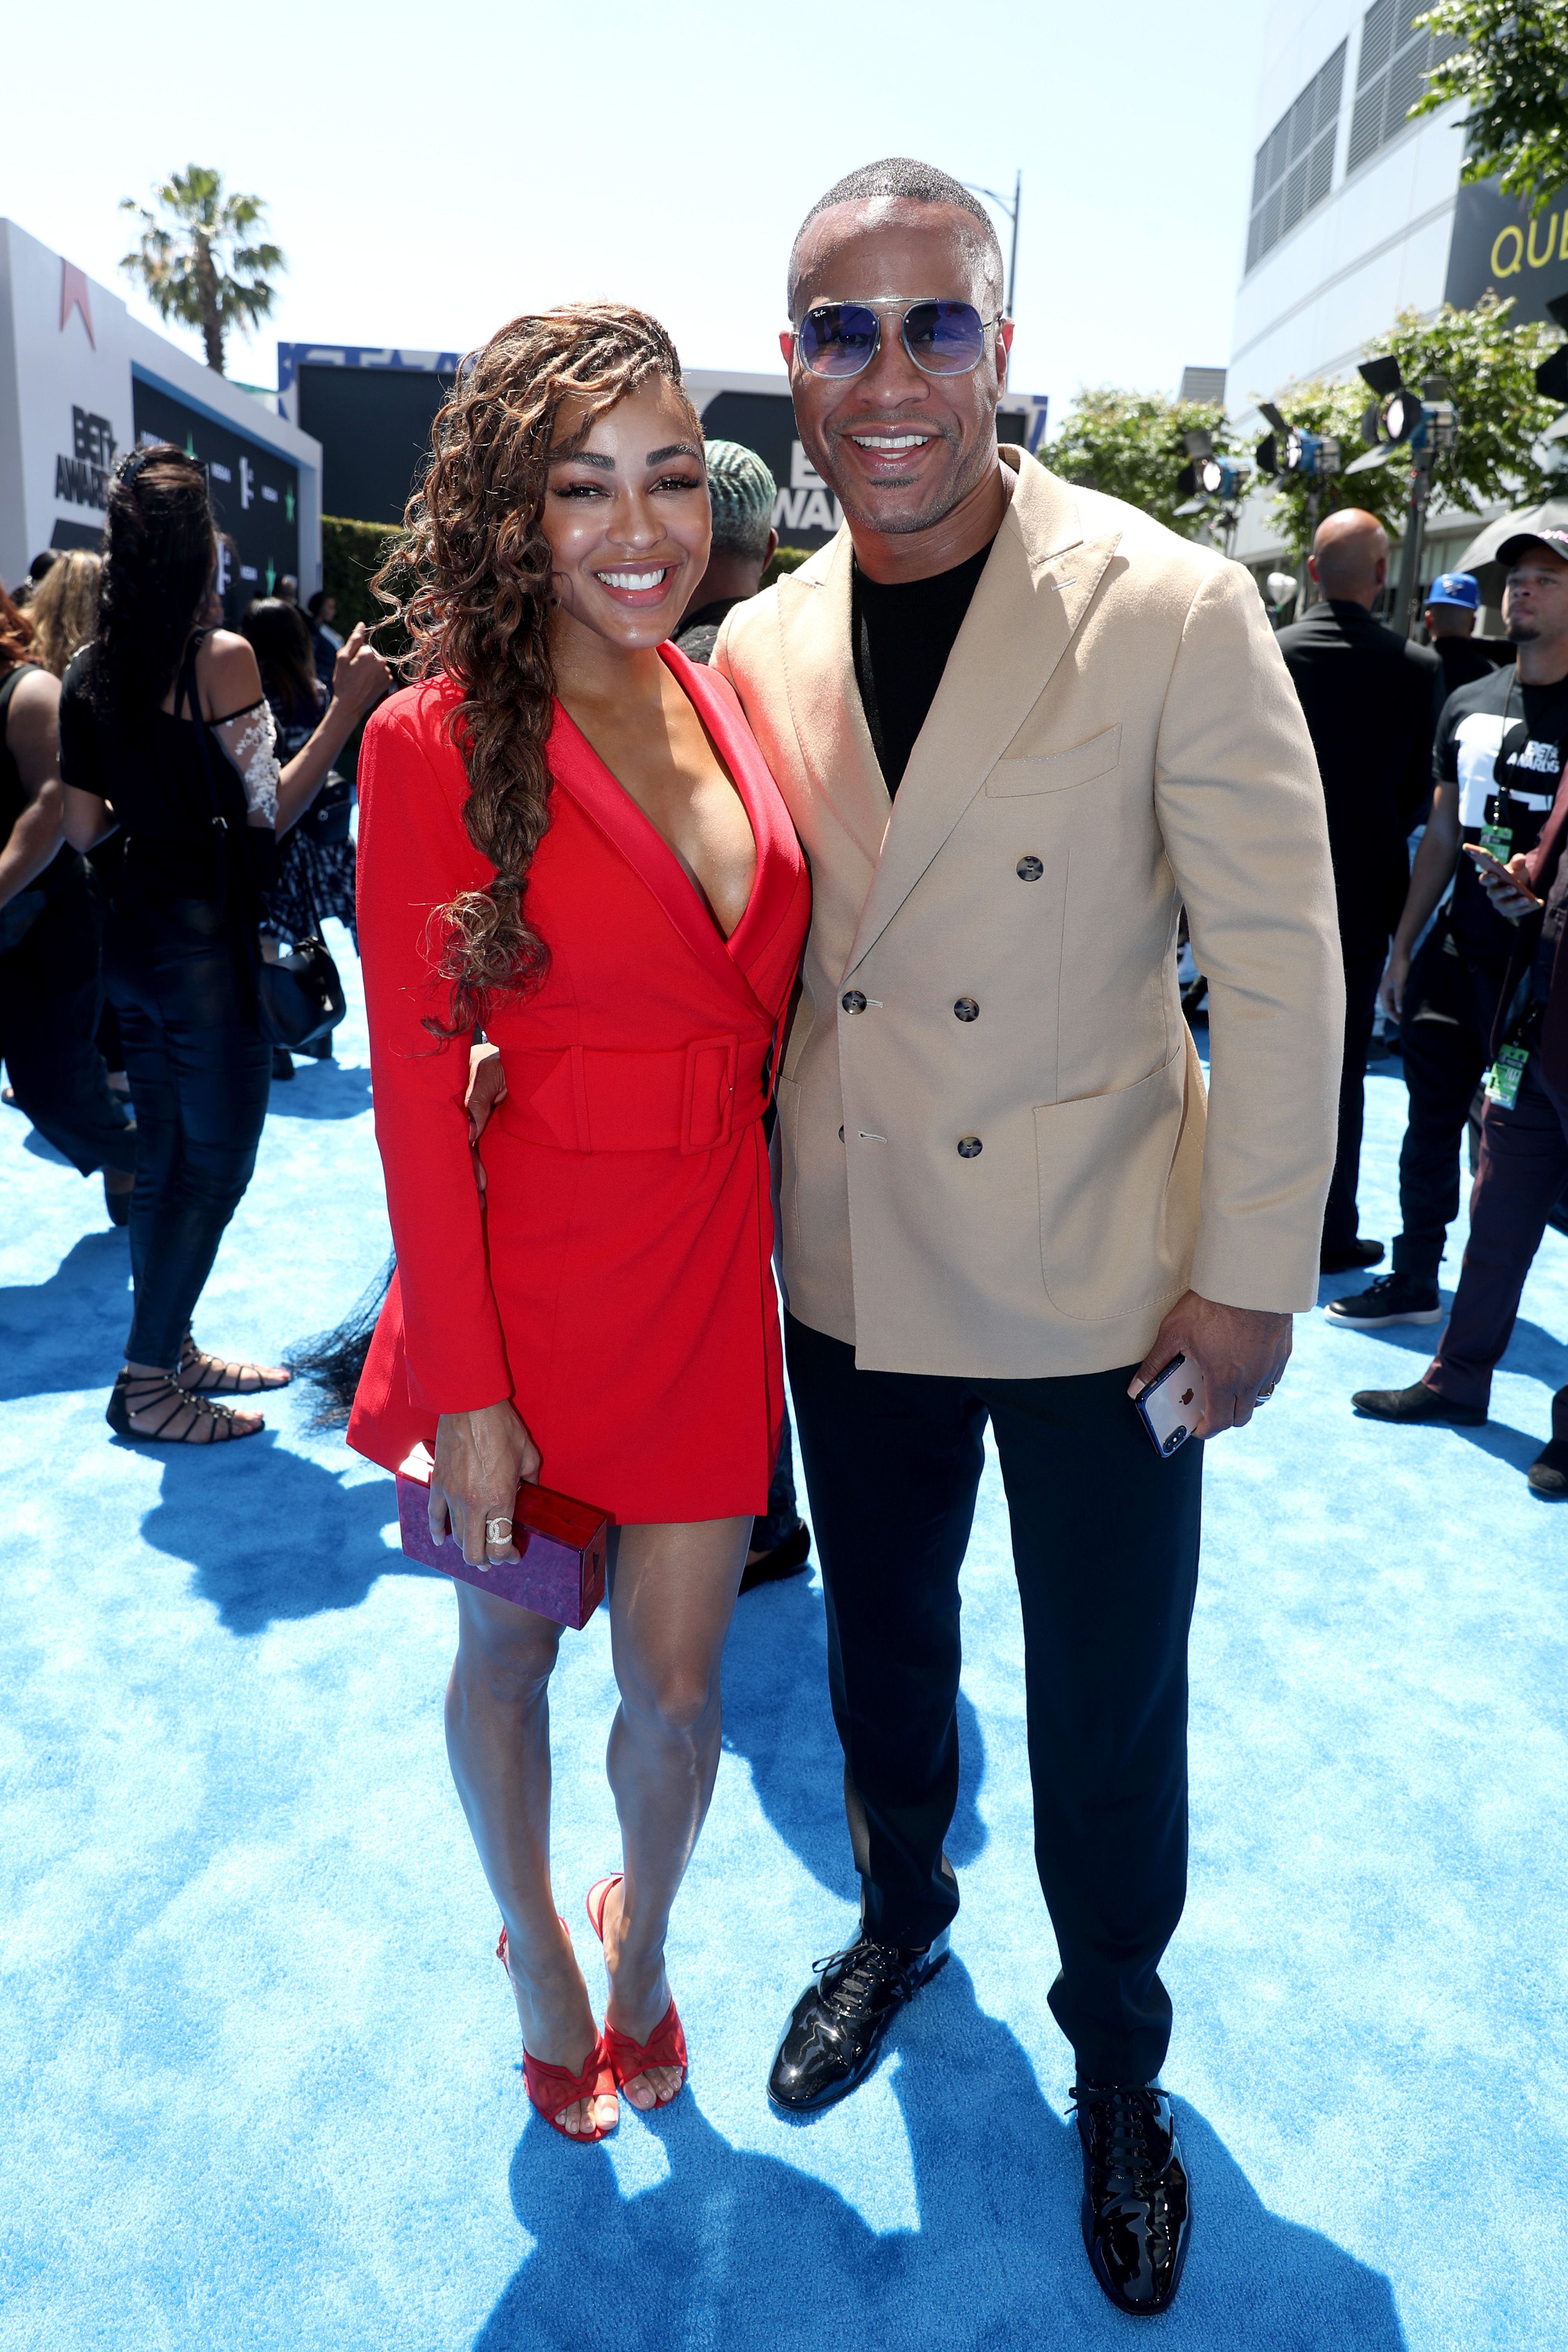 Meagan Good and DeVon Franklin attend the 2019 BET Awards at Microsoft Theater on June 23, 2019 in Los Angeles, California. | Source: Getty Images